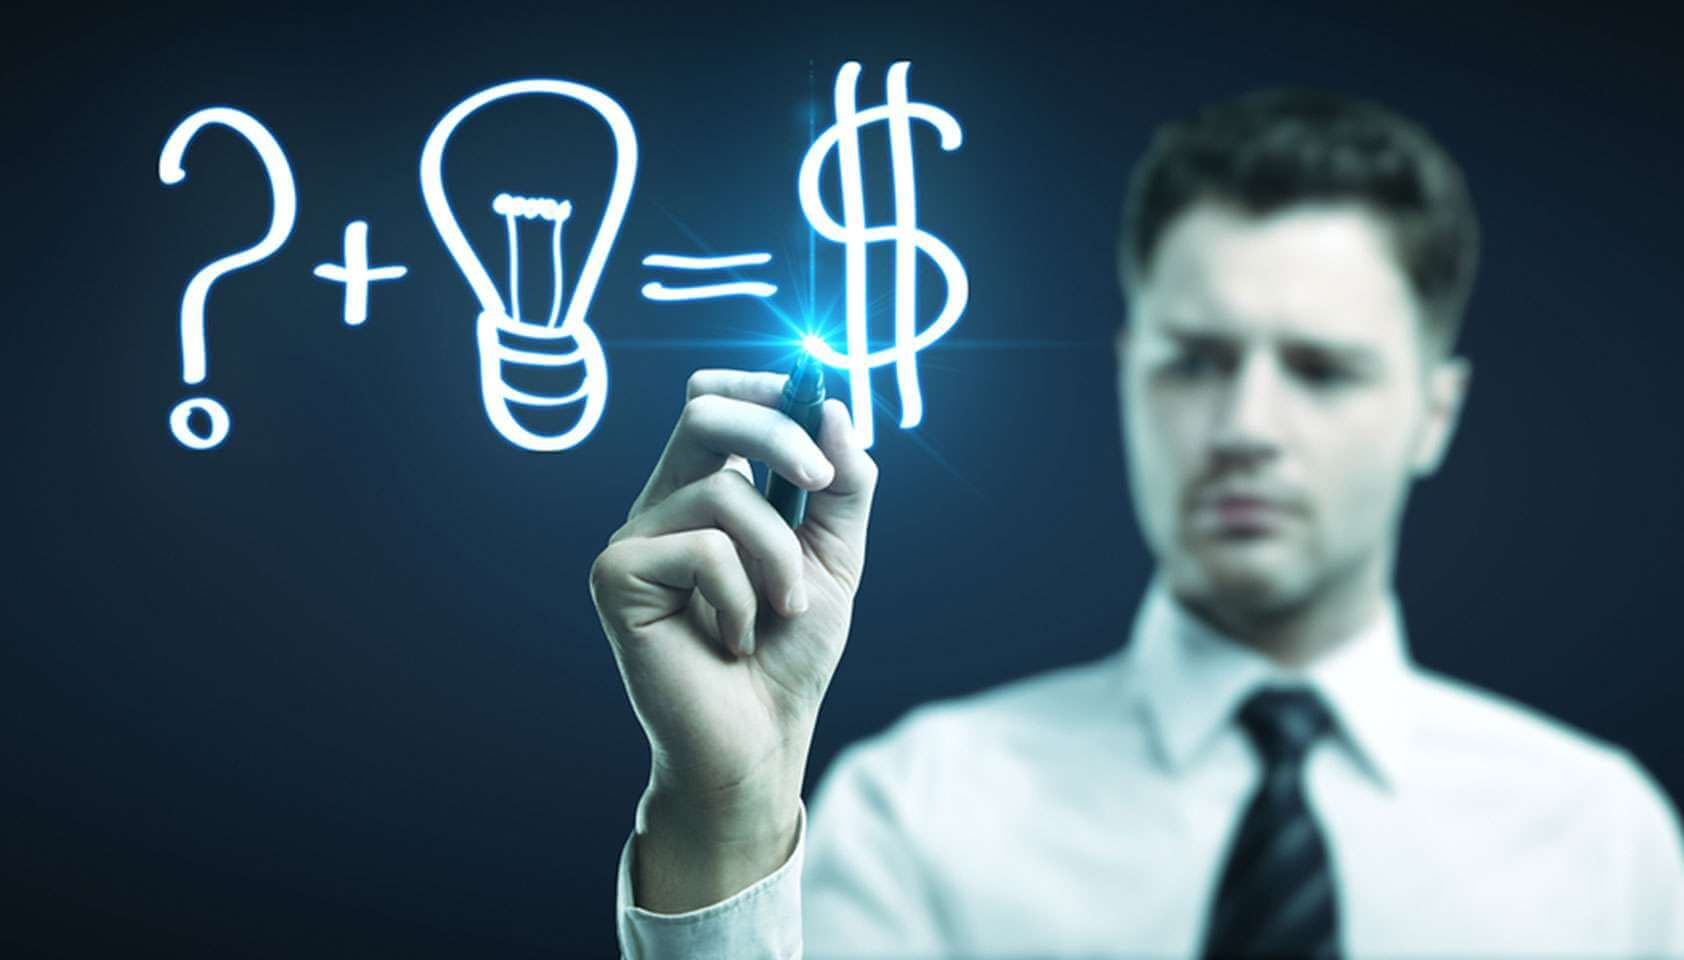 How much Money should You Raise for Your Startup?